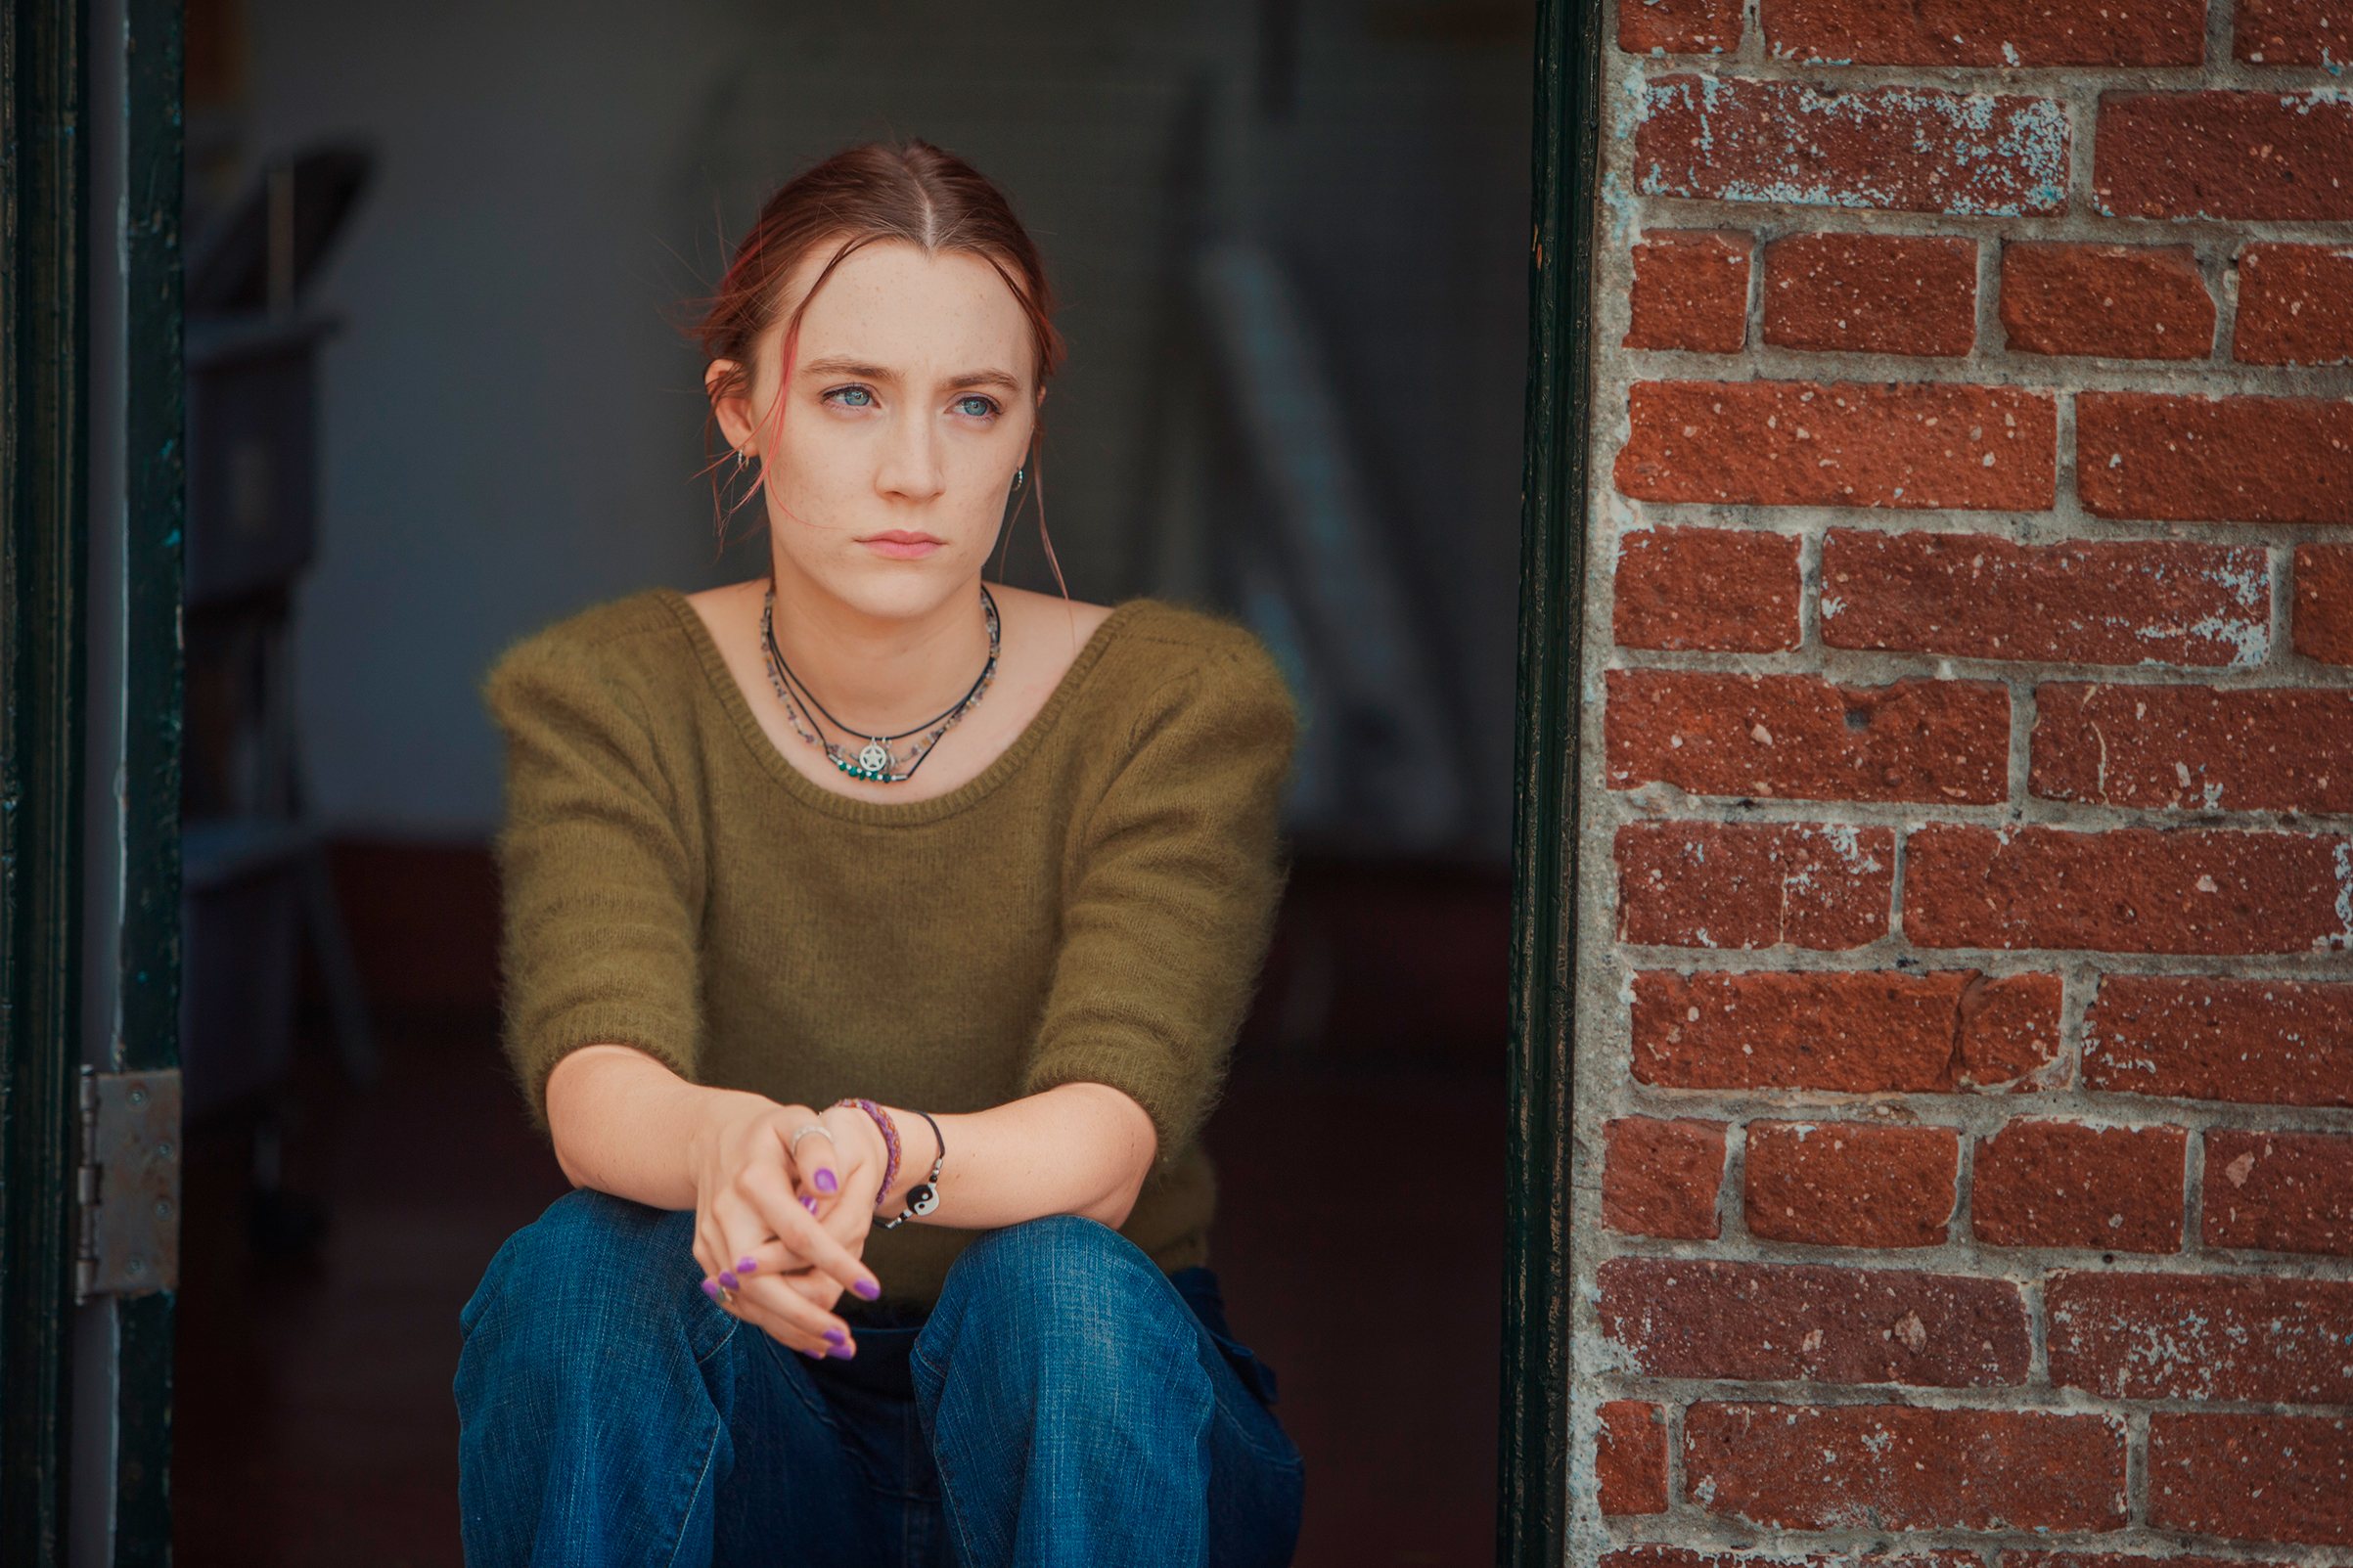 Ronan as Christine, a.k.a. Lady Bird. She wants everything, right away, yet even a $3 magazine is out of reach